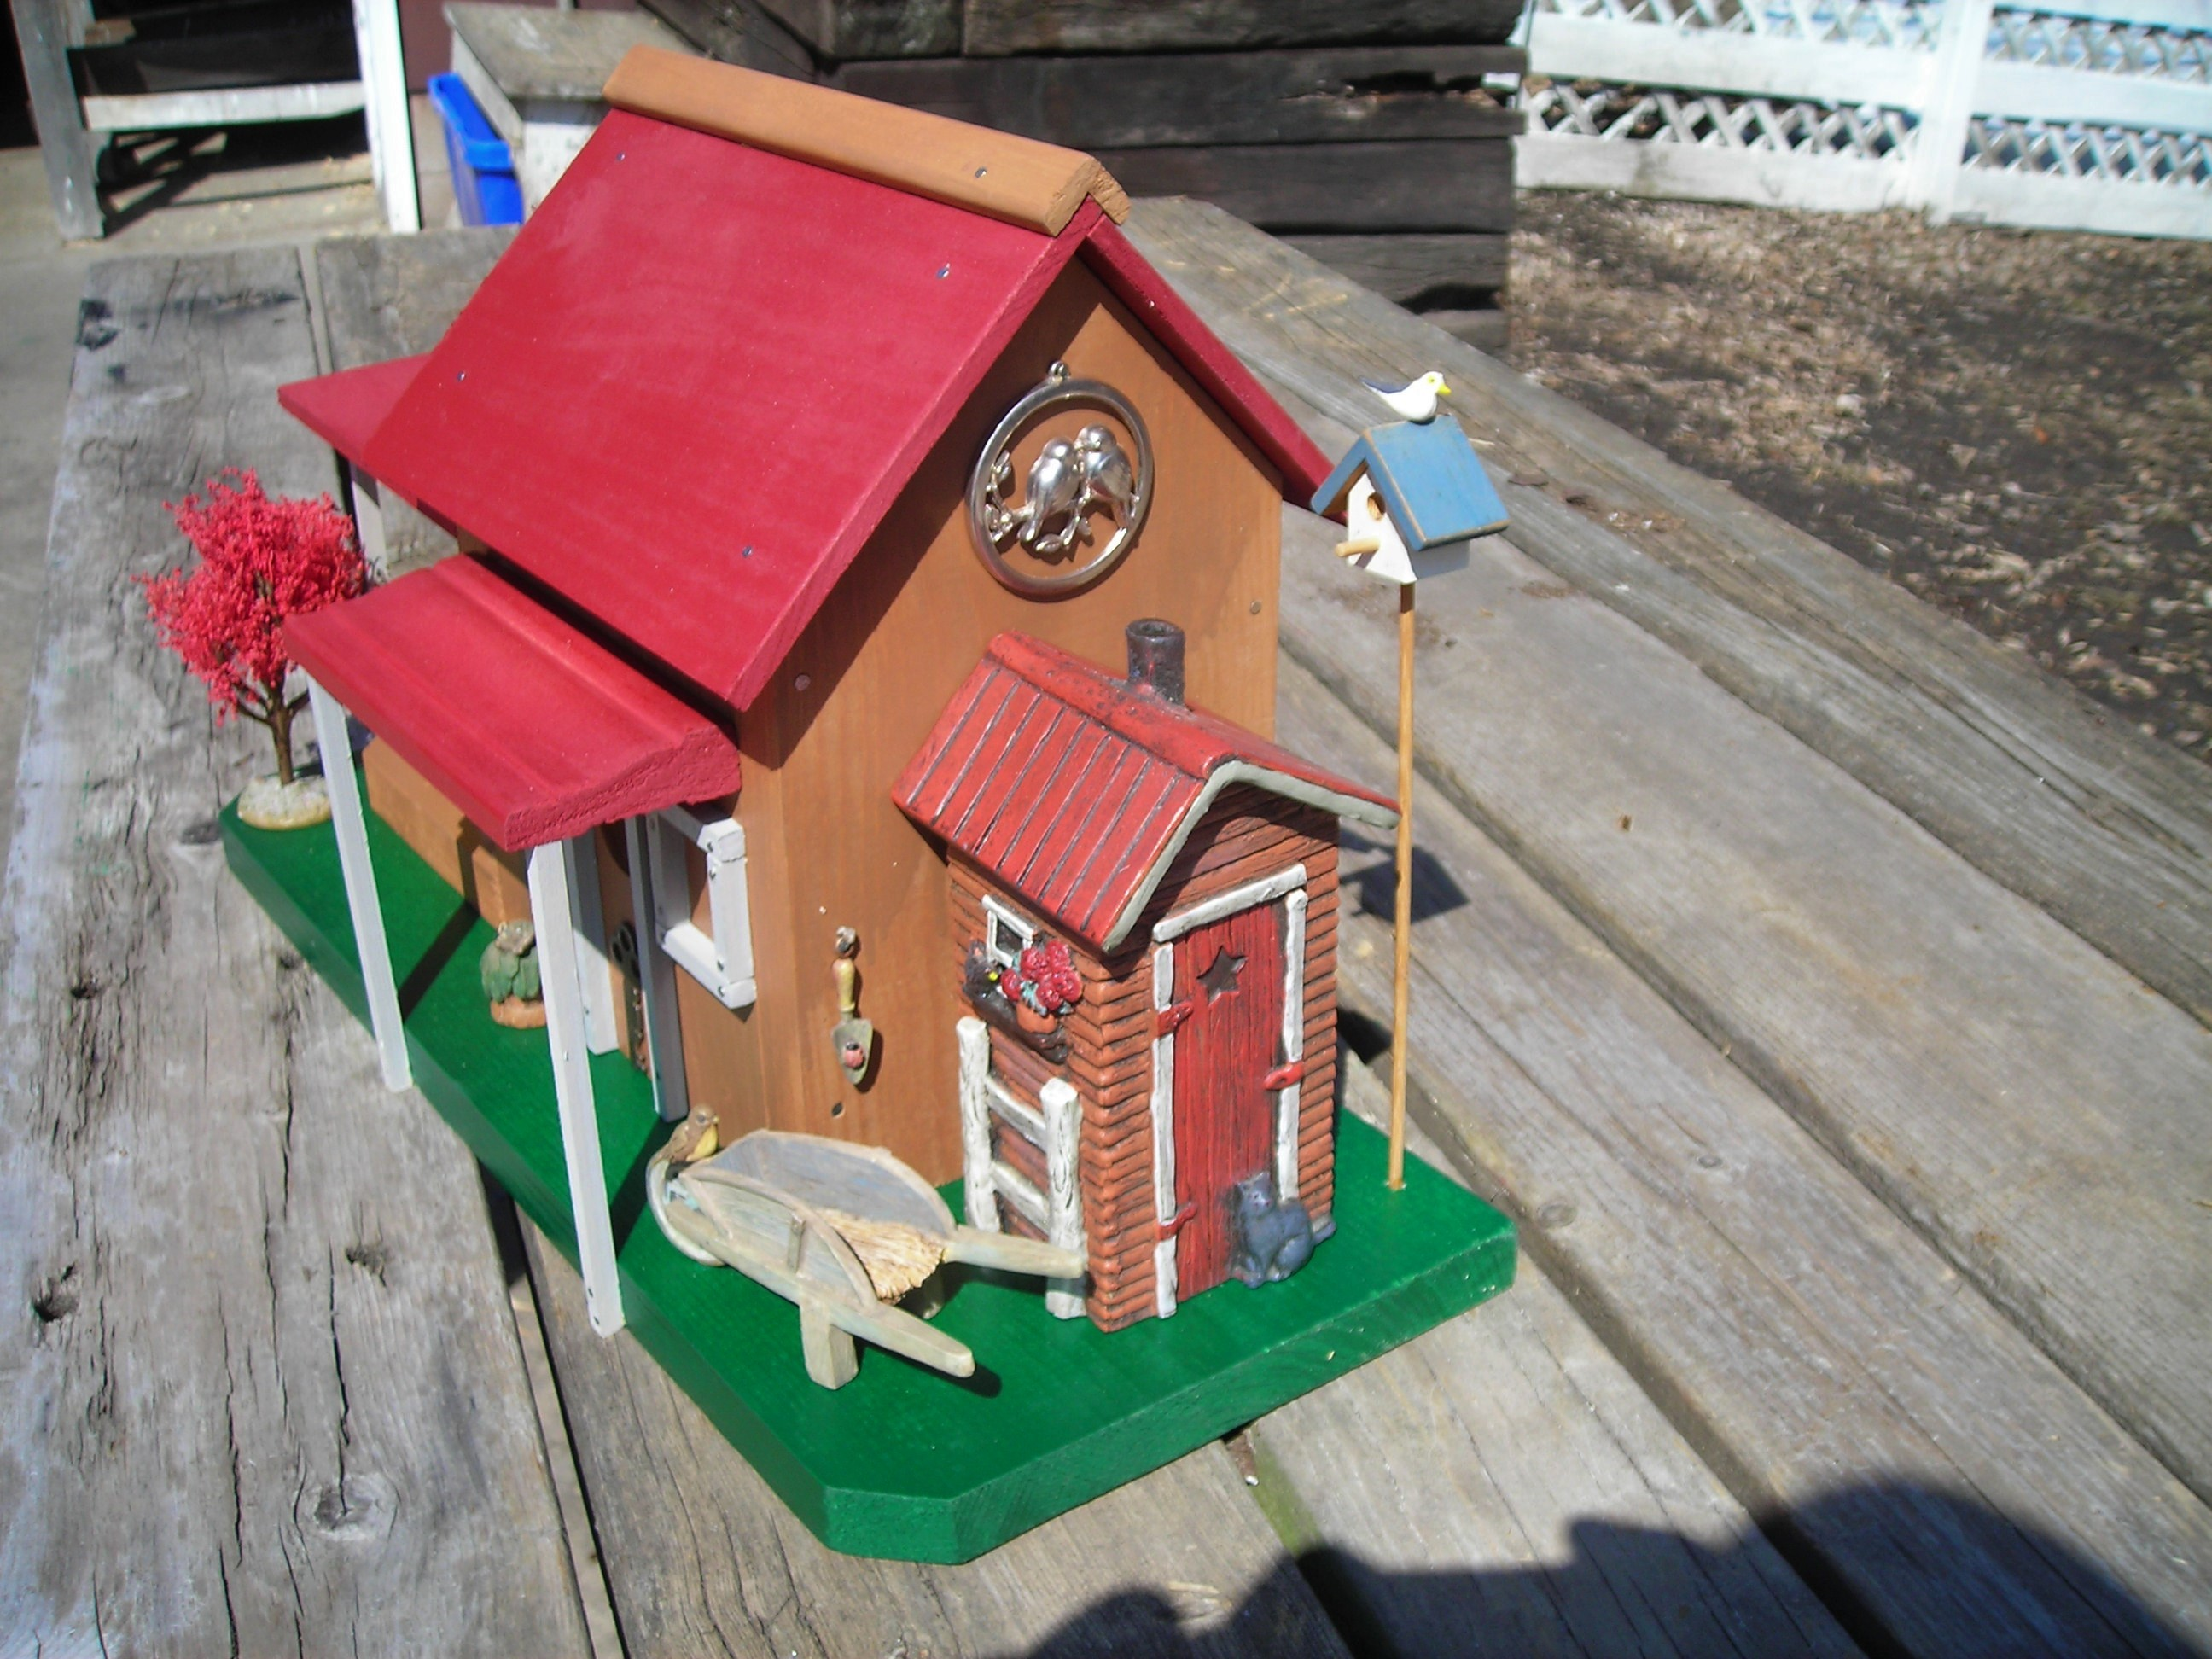 Rons Rustic Birdhouses Red Roof Cottage right